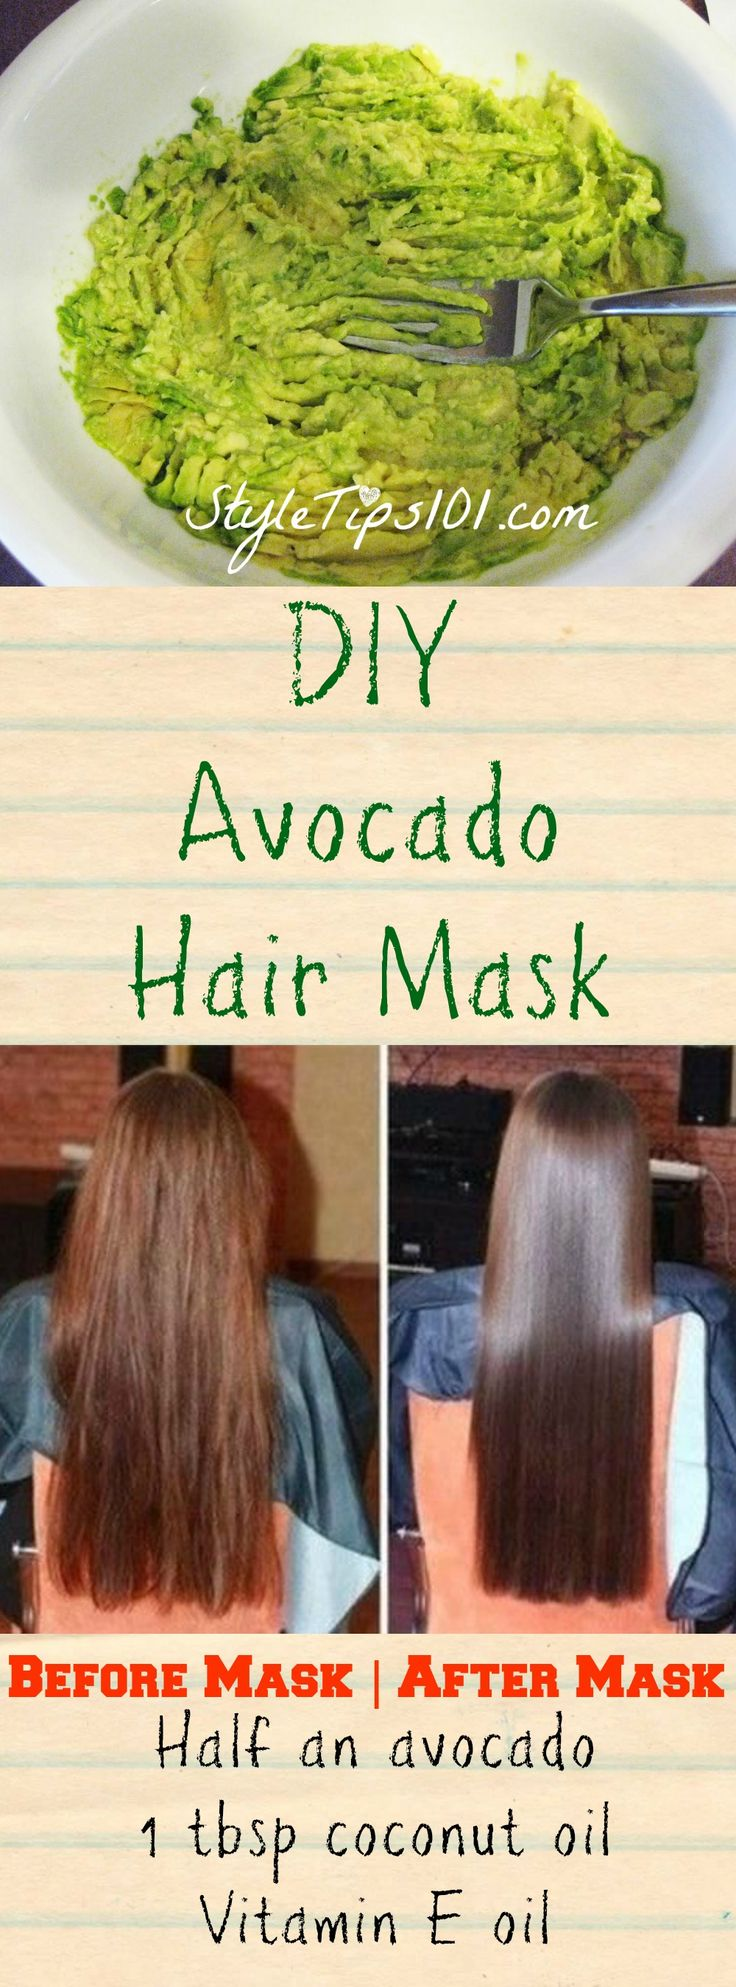 best 25 avocado hair treatments ideas on pinterest avocado hair mask treatment for damaged. Black Bedroom Furniture Sets. Home Design Ideas